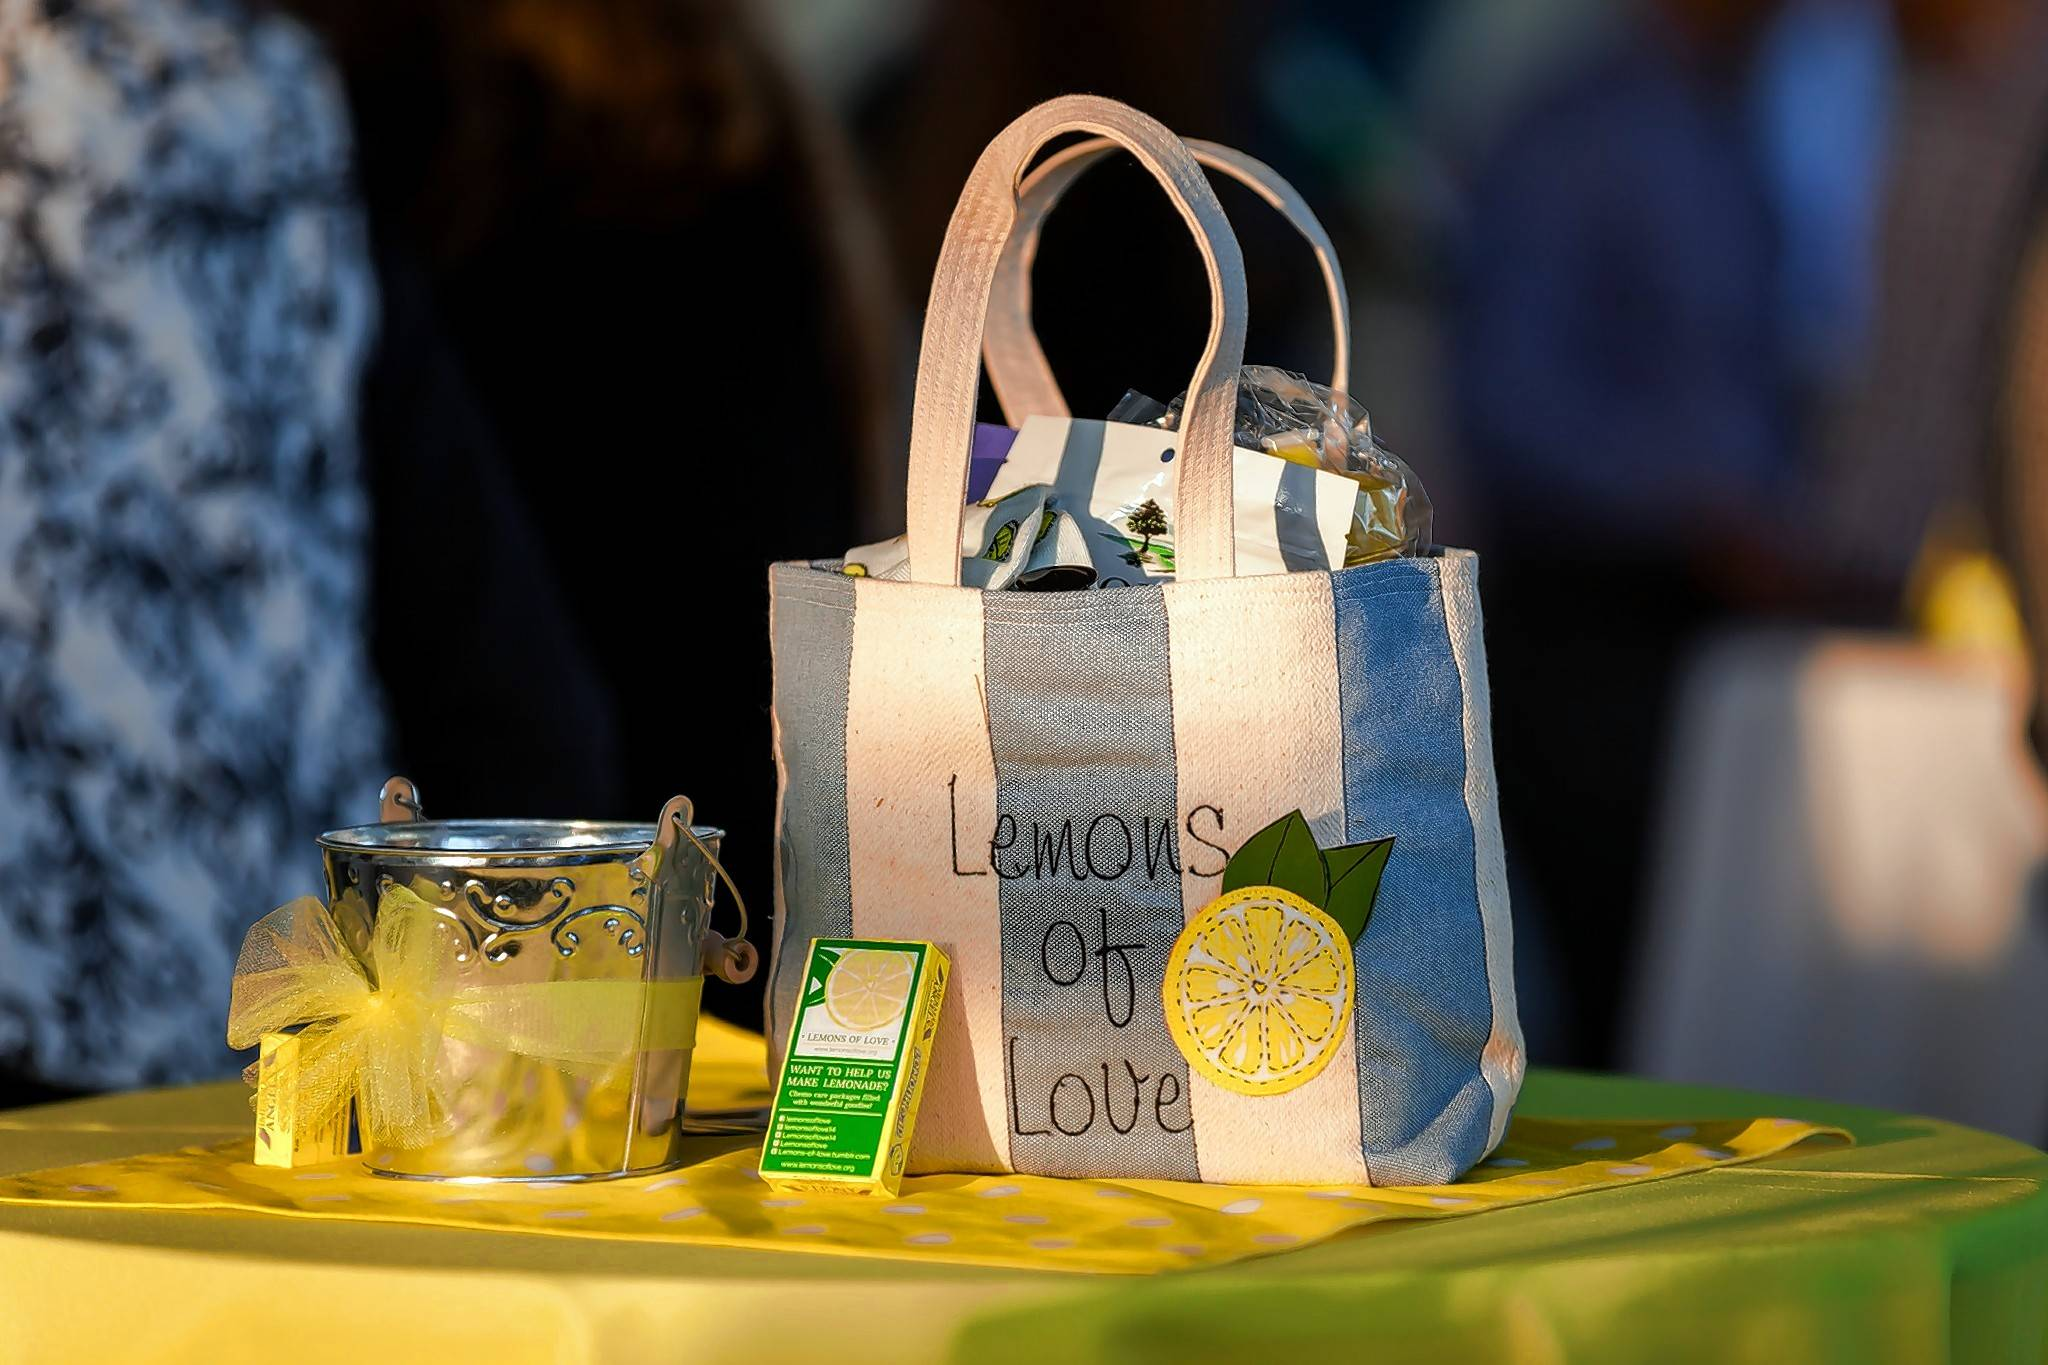 A Lemons of Love bag filled with things someone undergoing chemo might find useful.